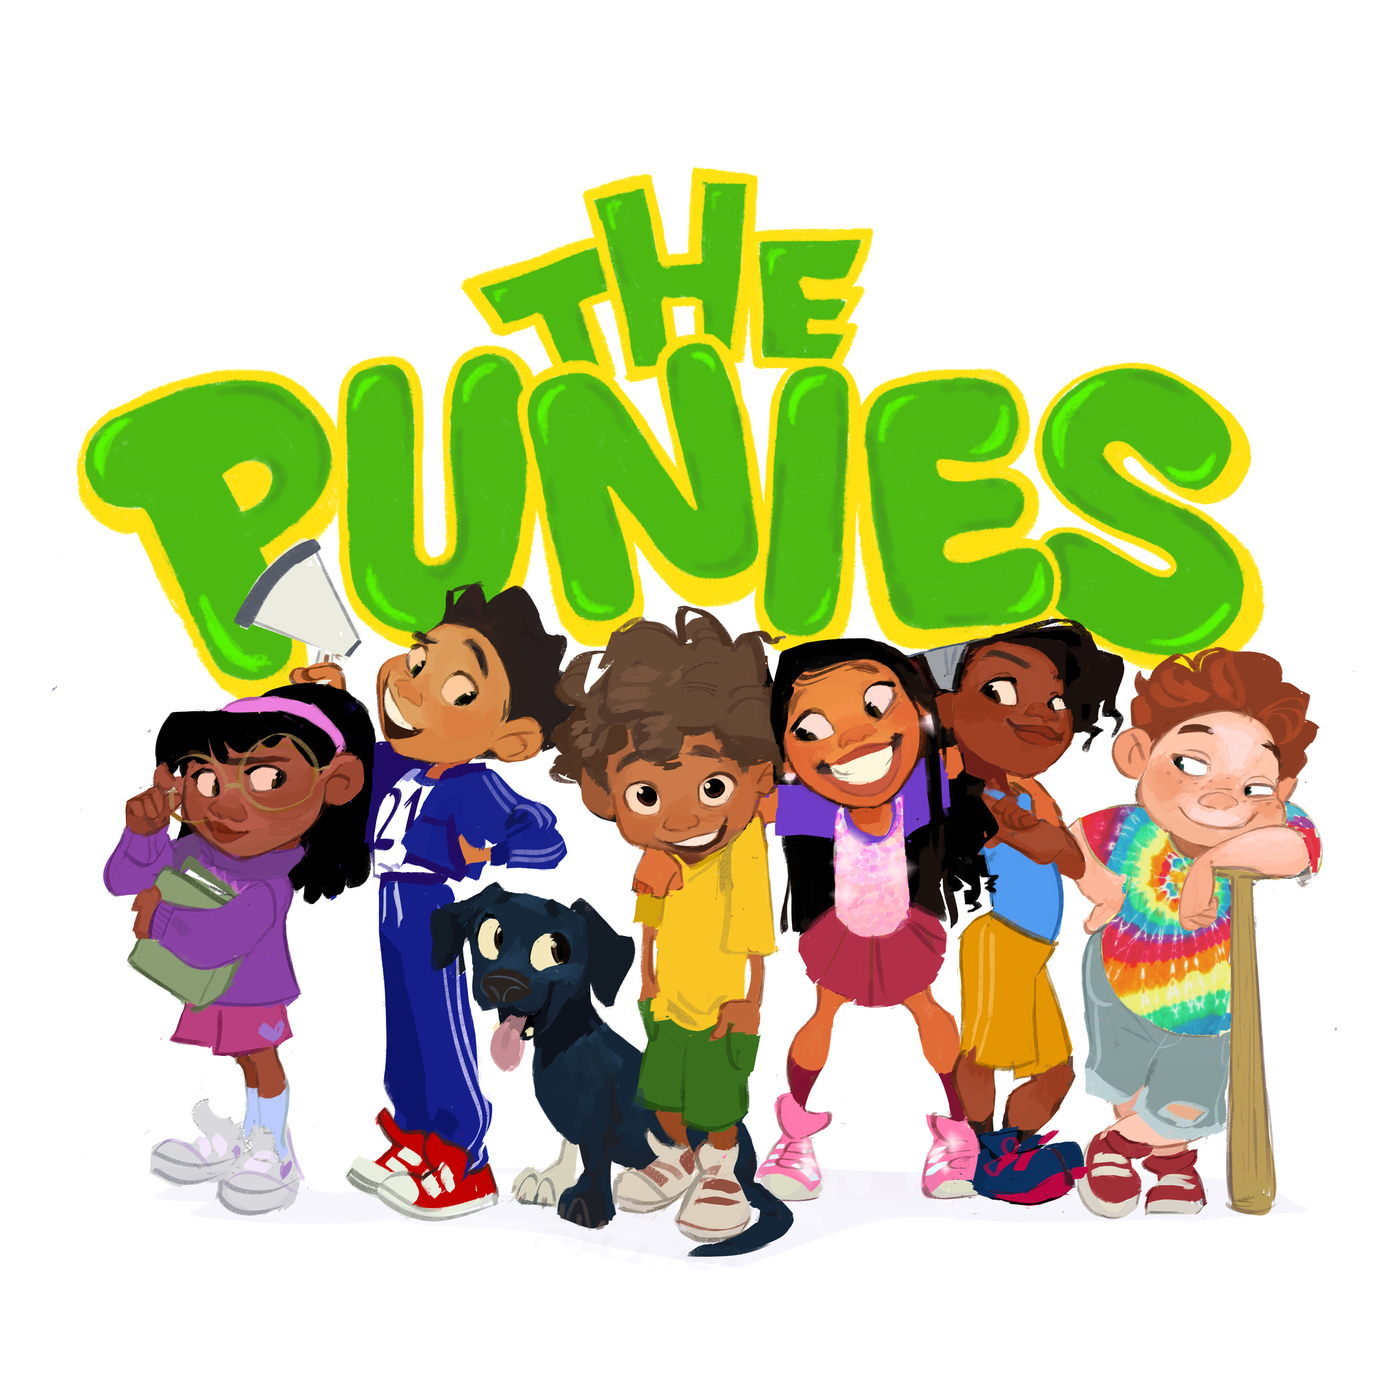 The Punies by Kobe Bryant